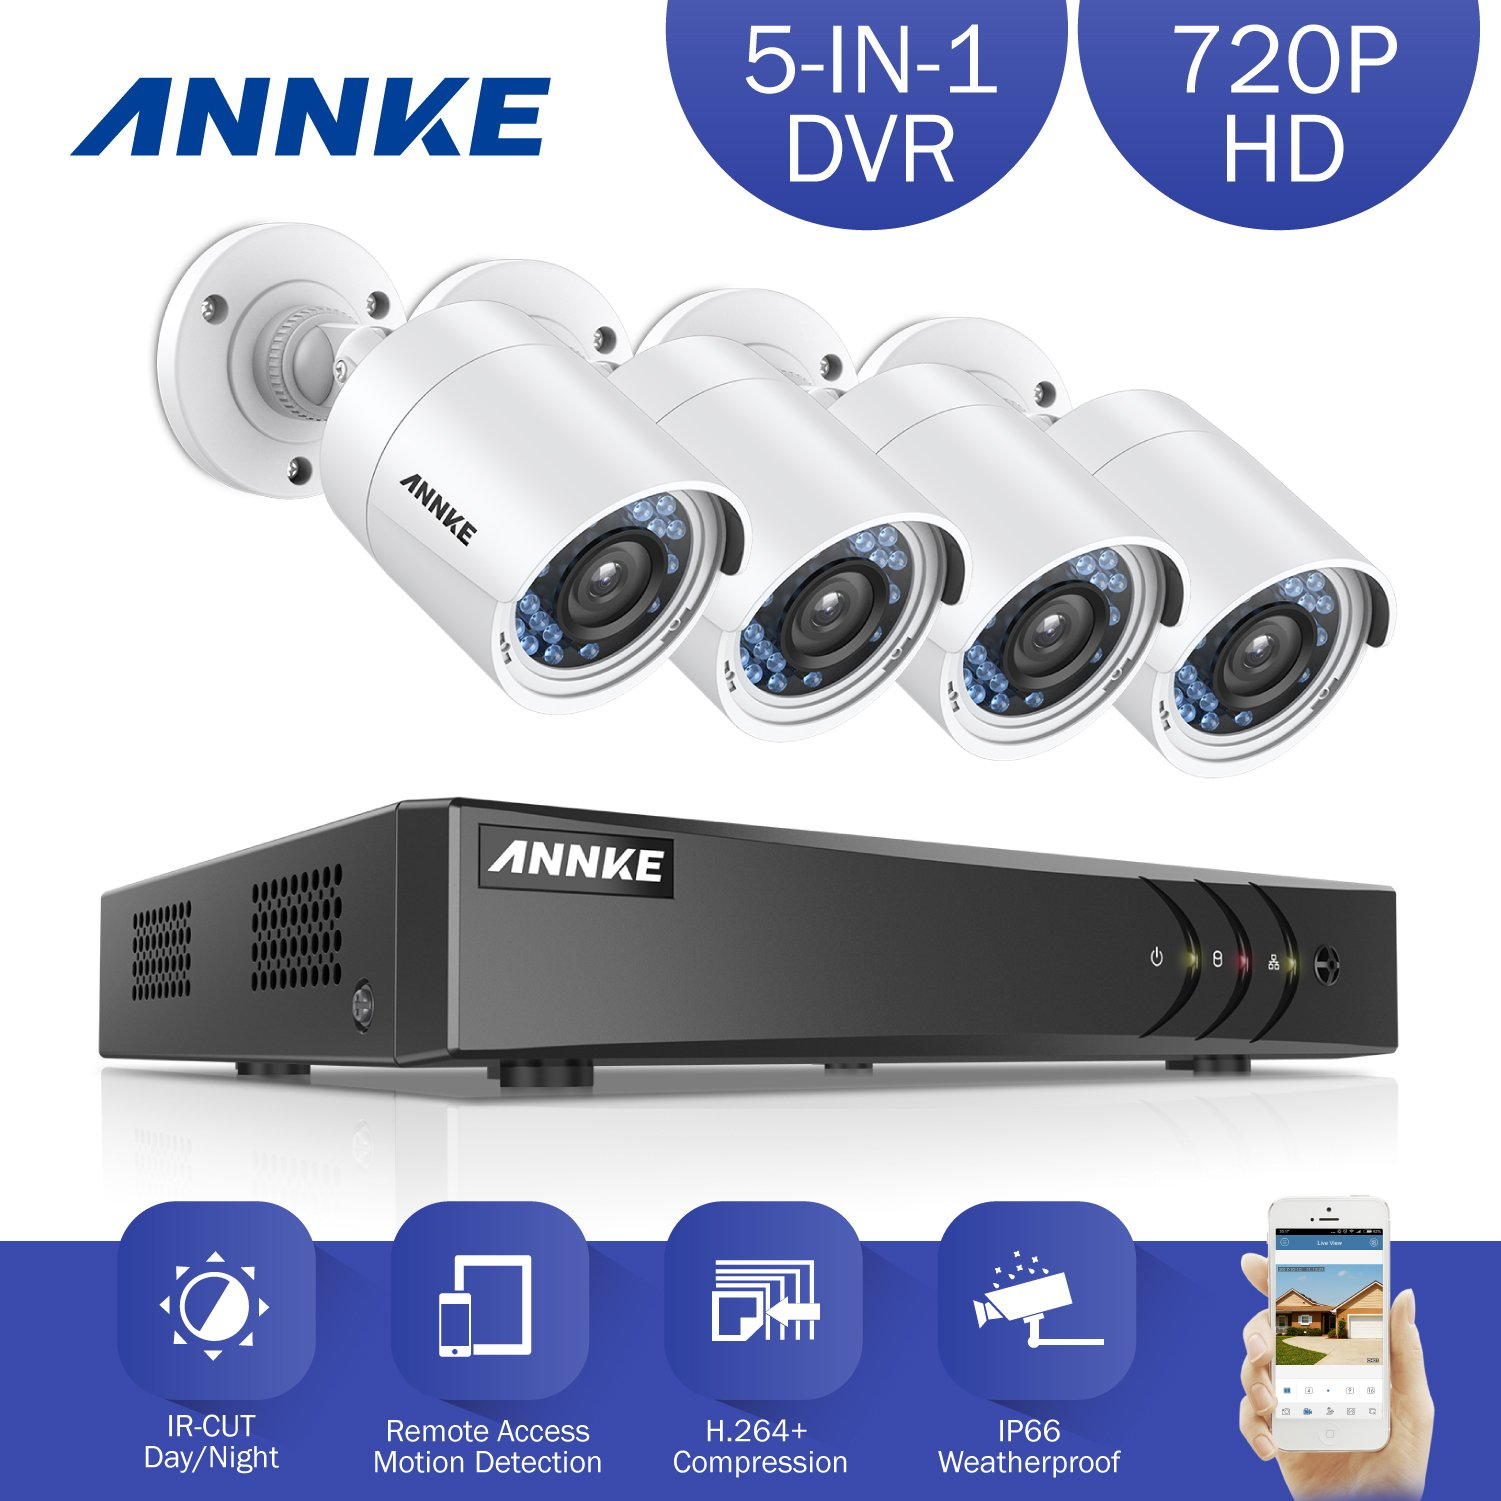 ANNKE 8CH 1080P Lite HD-TVI Surveillance DVR Camera System and 4x1.0MP Indoor/Outdoor Weatherproof Day/Night Metal CCTV Camera, NO Hard Drive Included by ANNKE (Image #2)